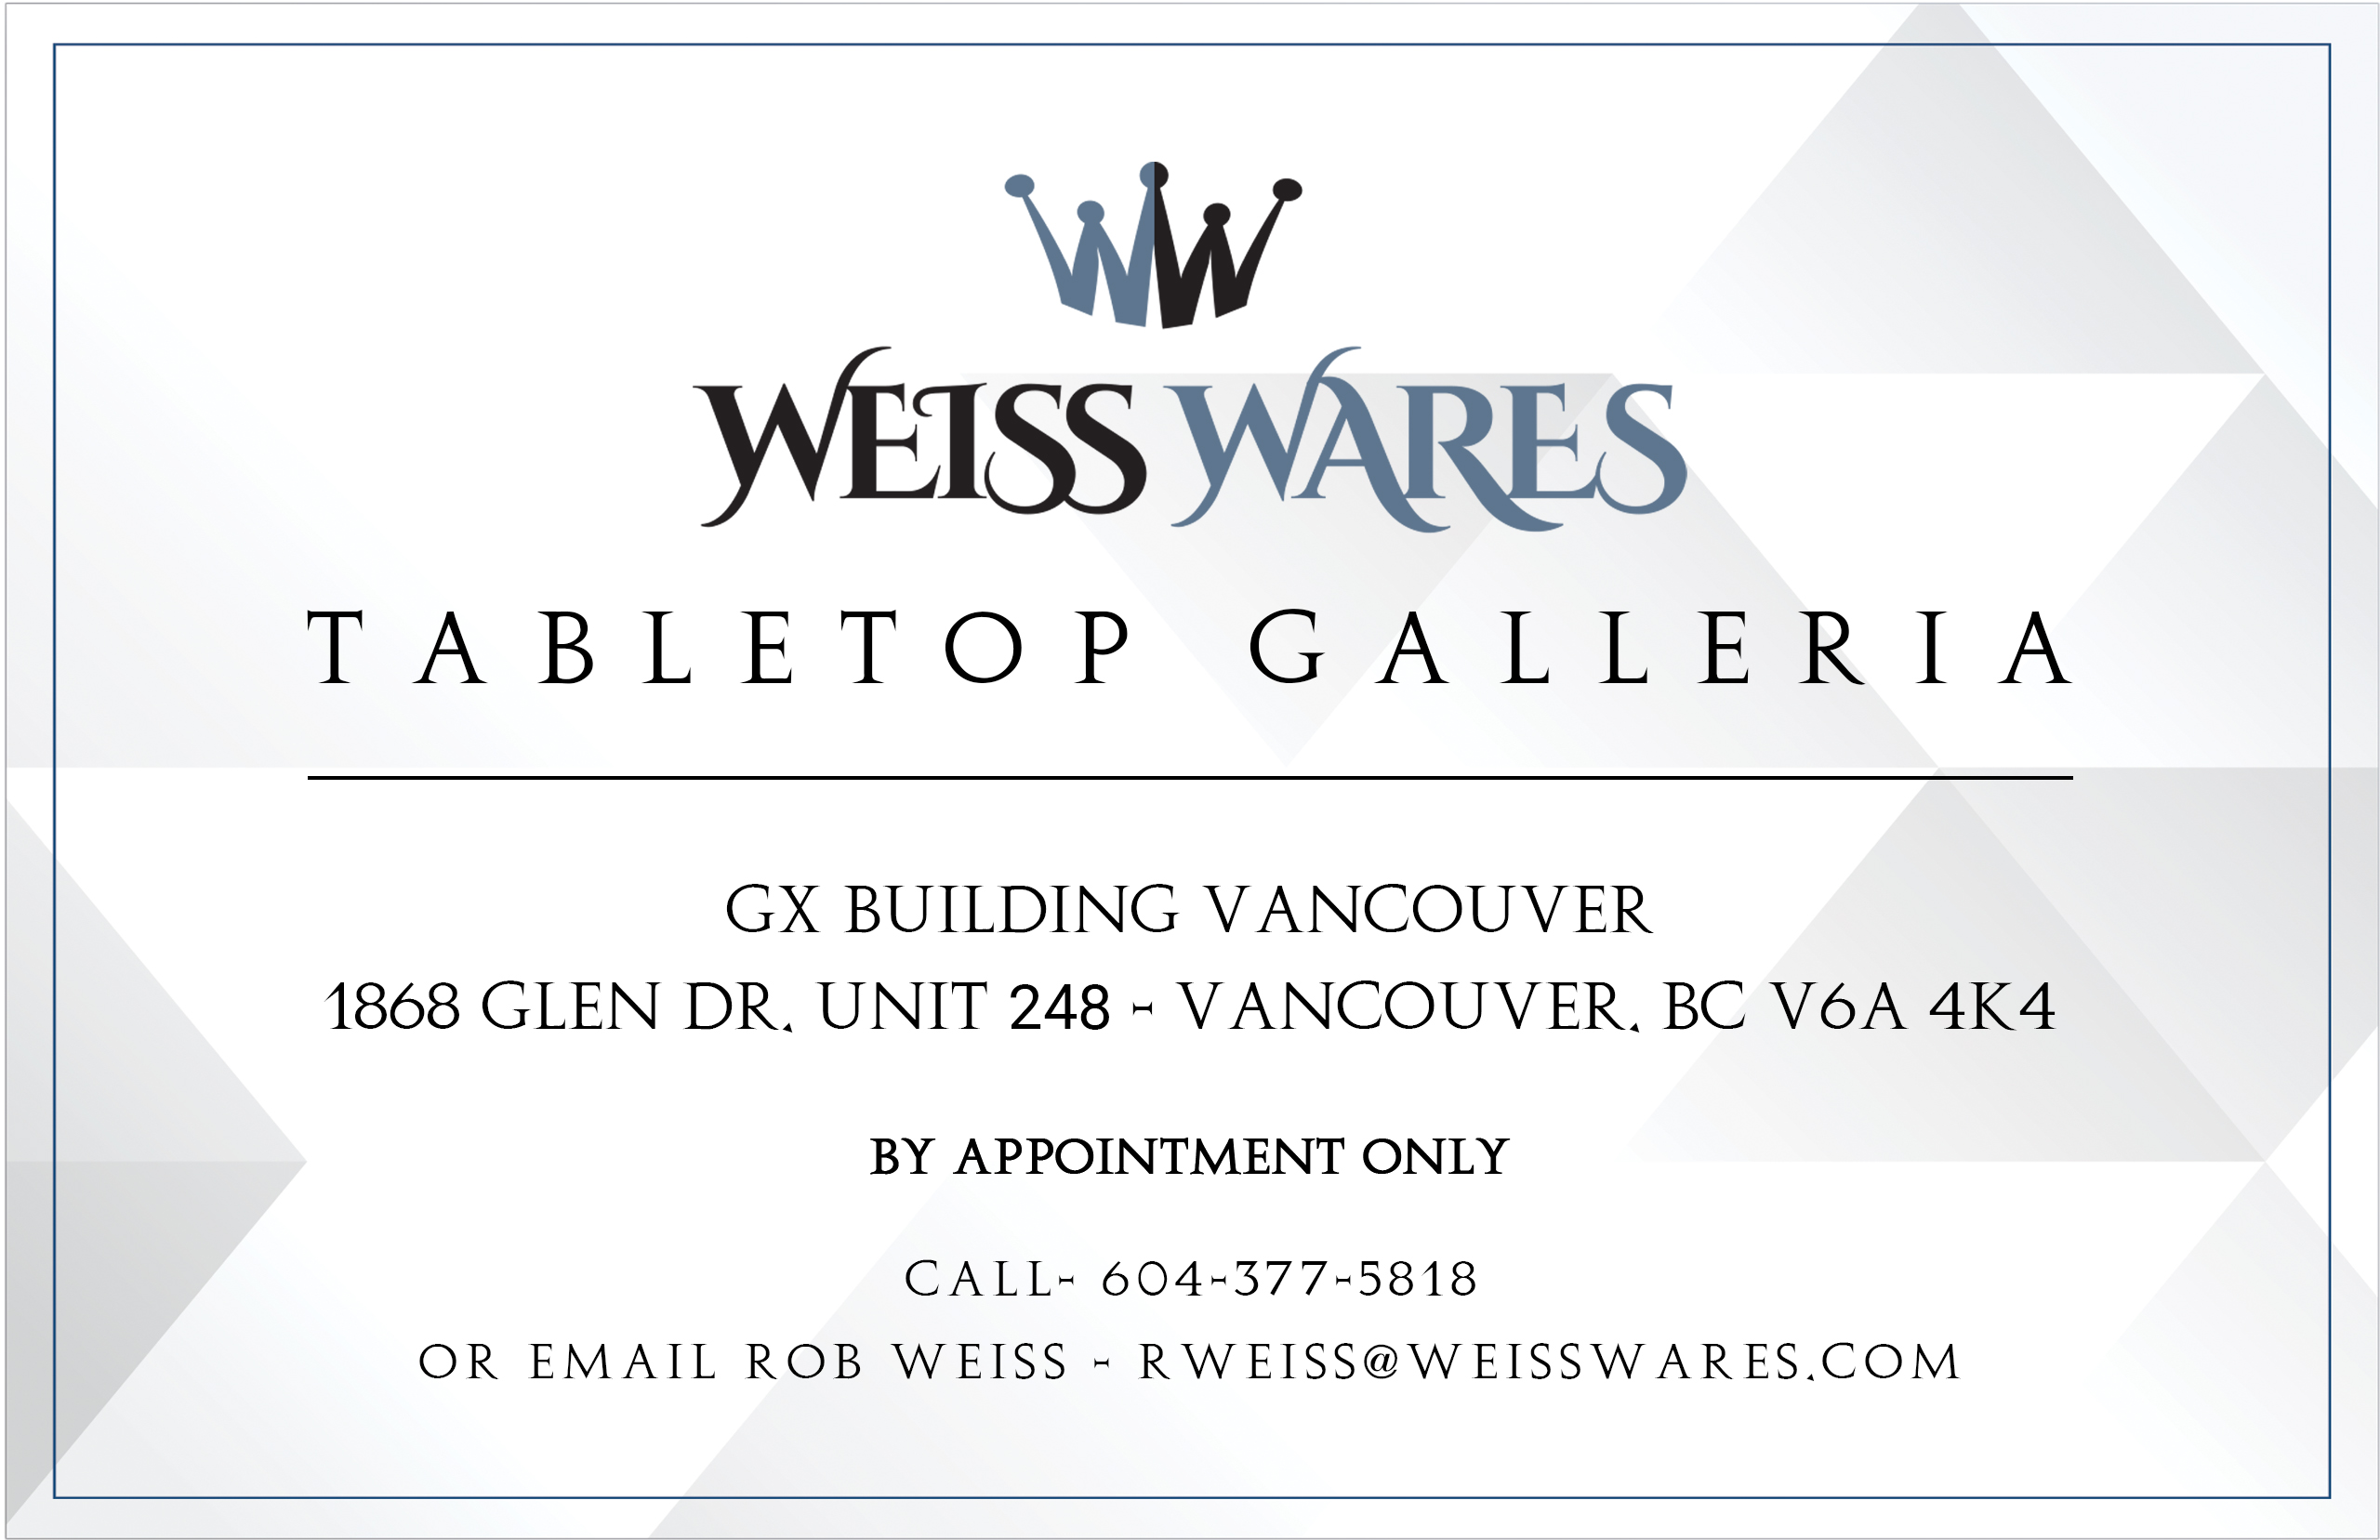 Weiss Wares Address and Contact